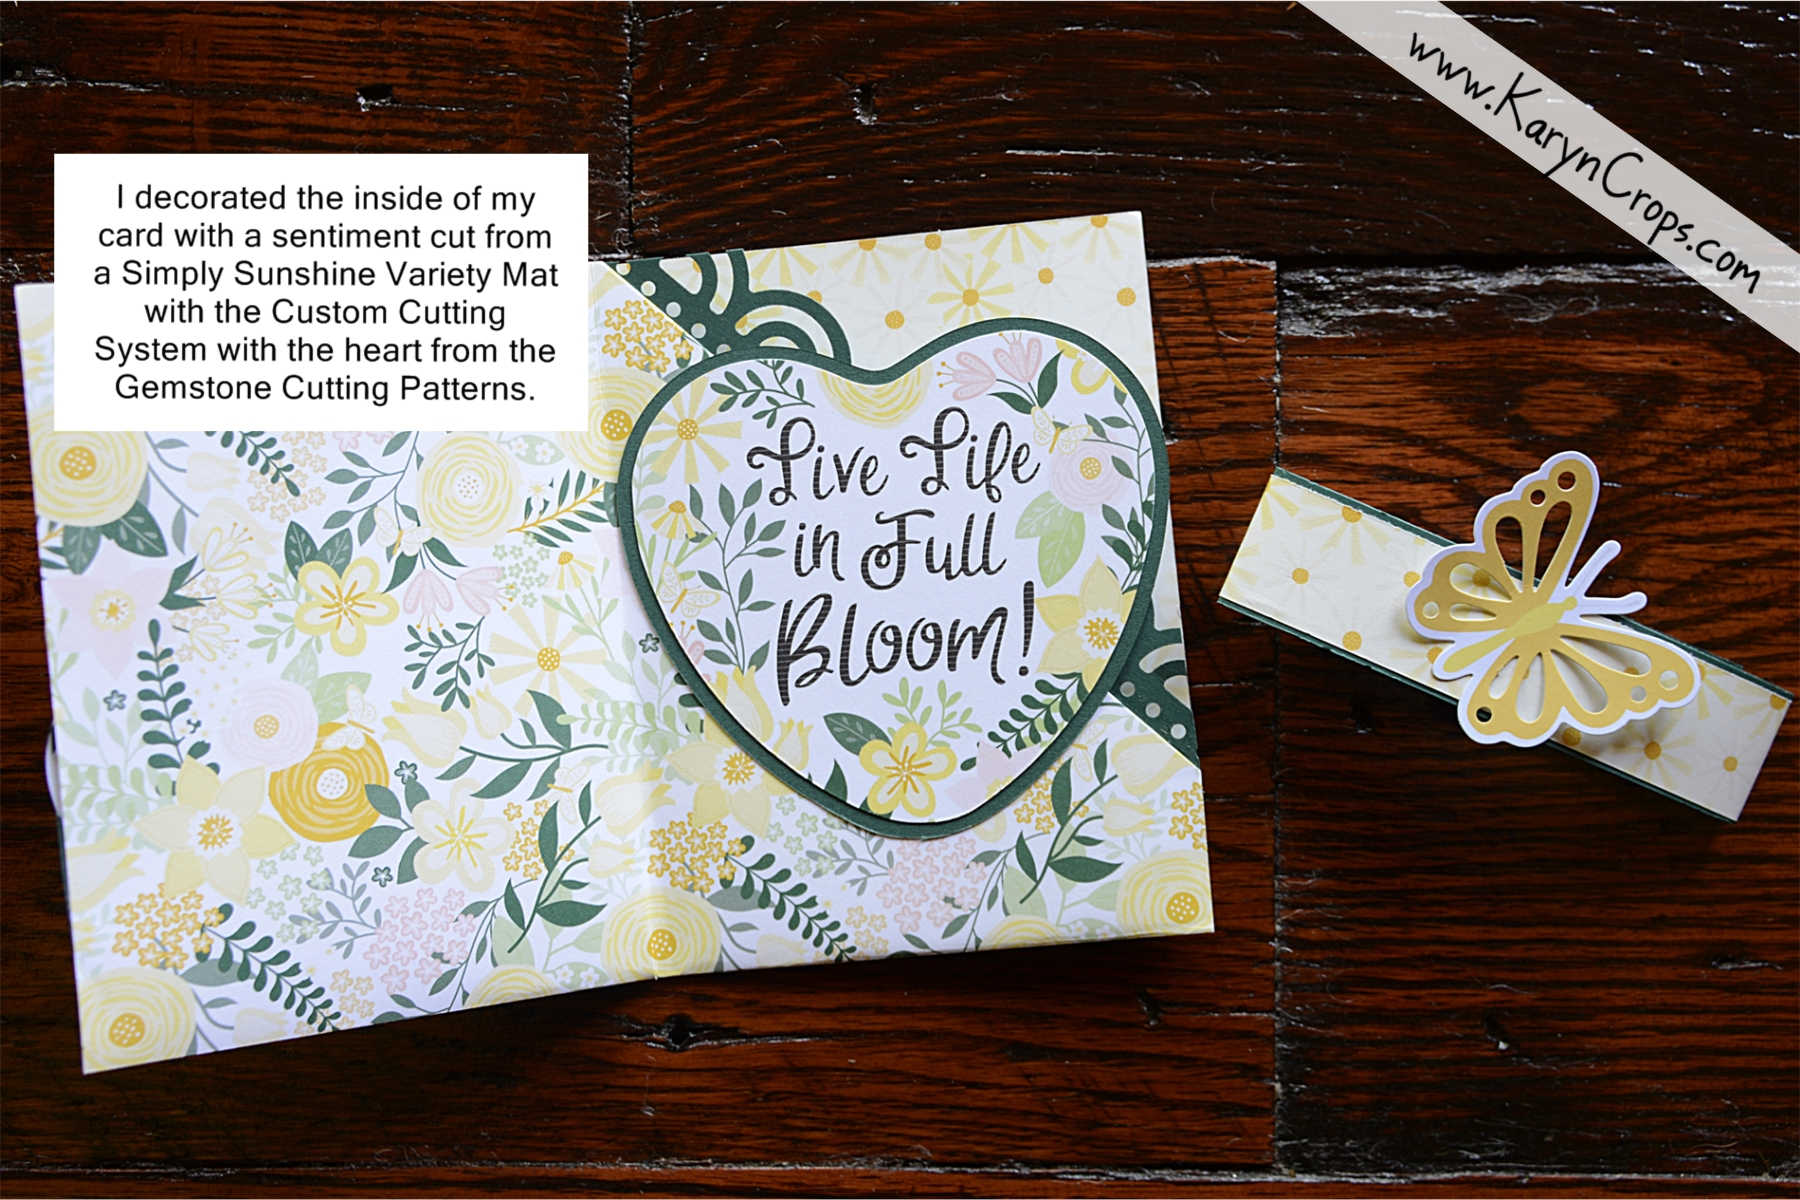 KarynCropsCLSFeaturedFridayCardAndTags - Page 002